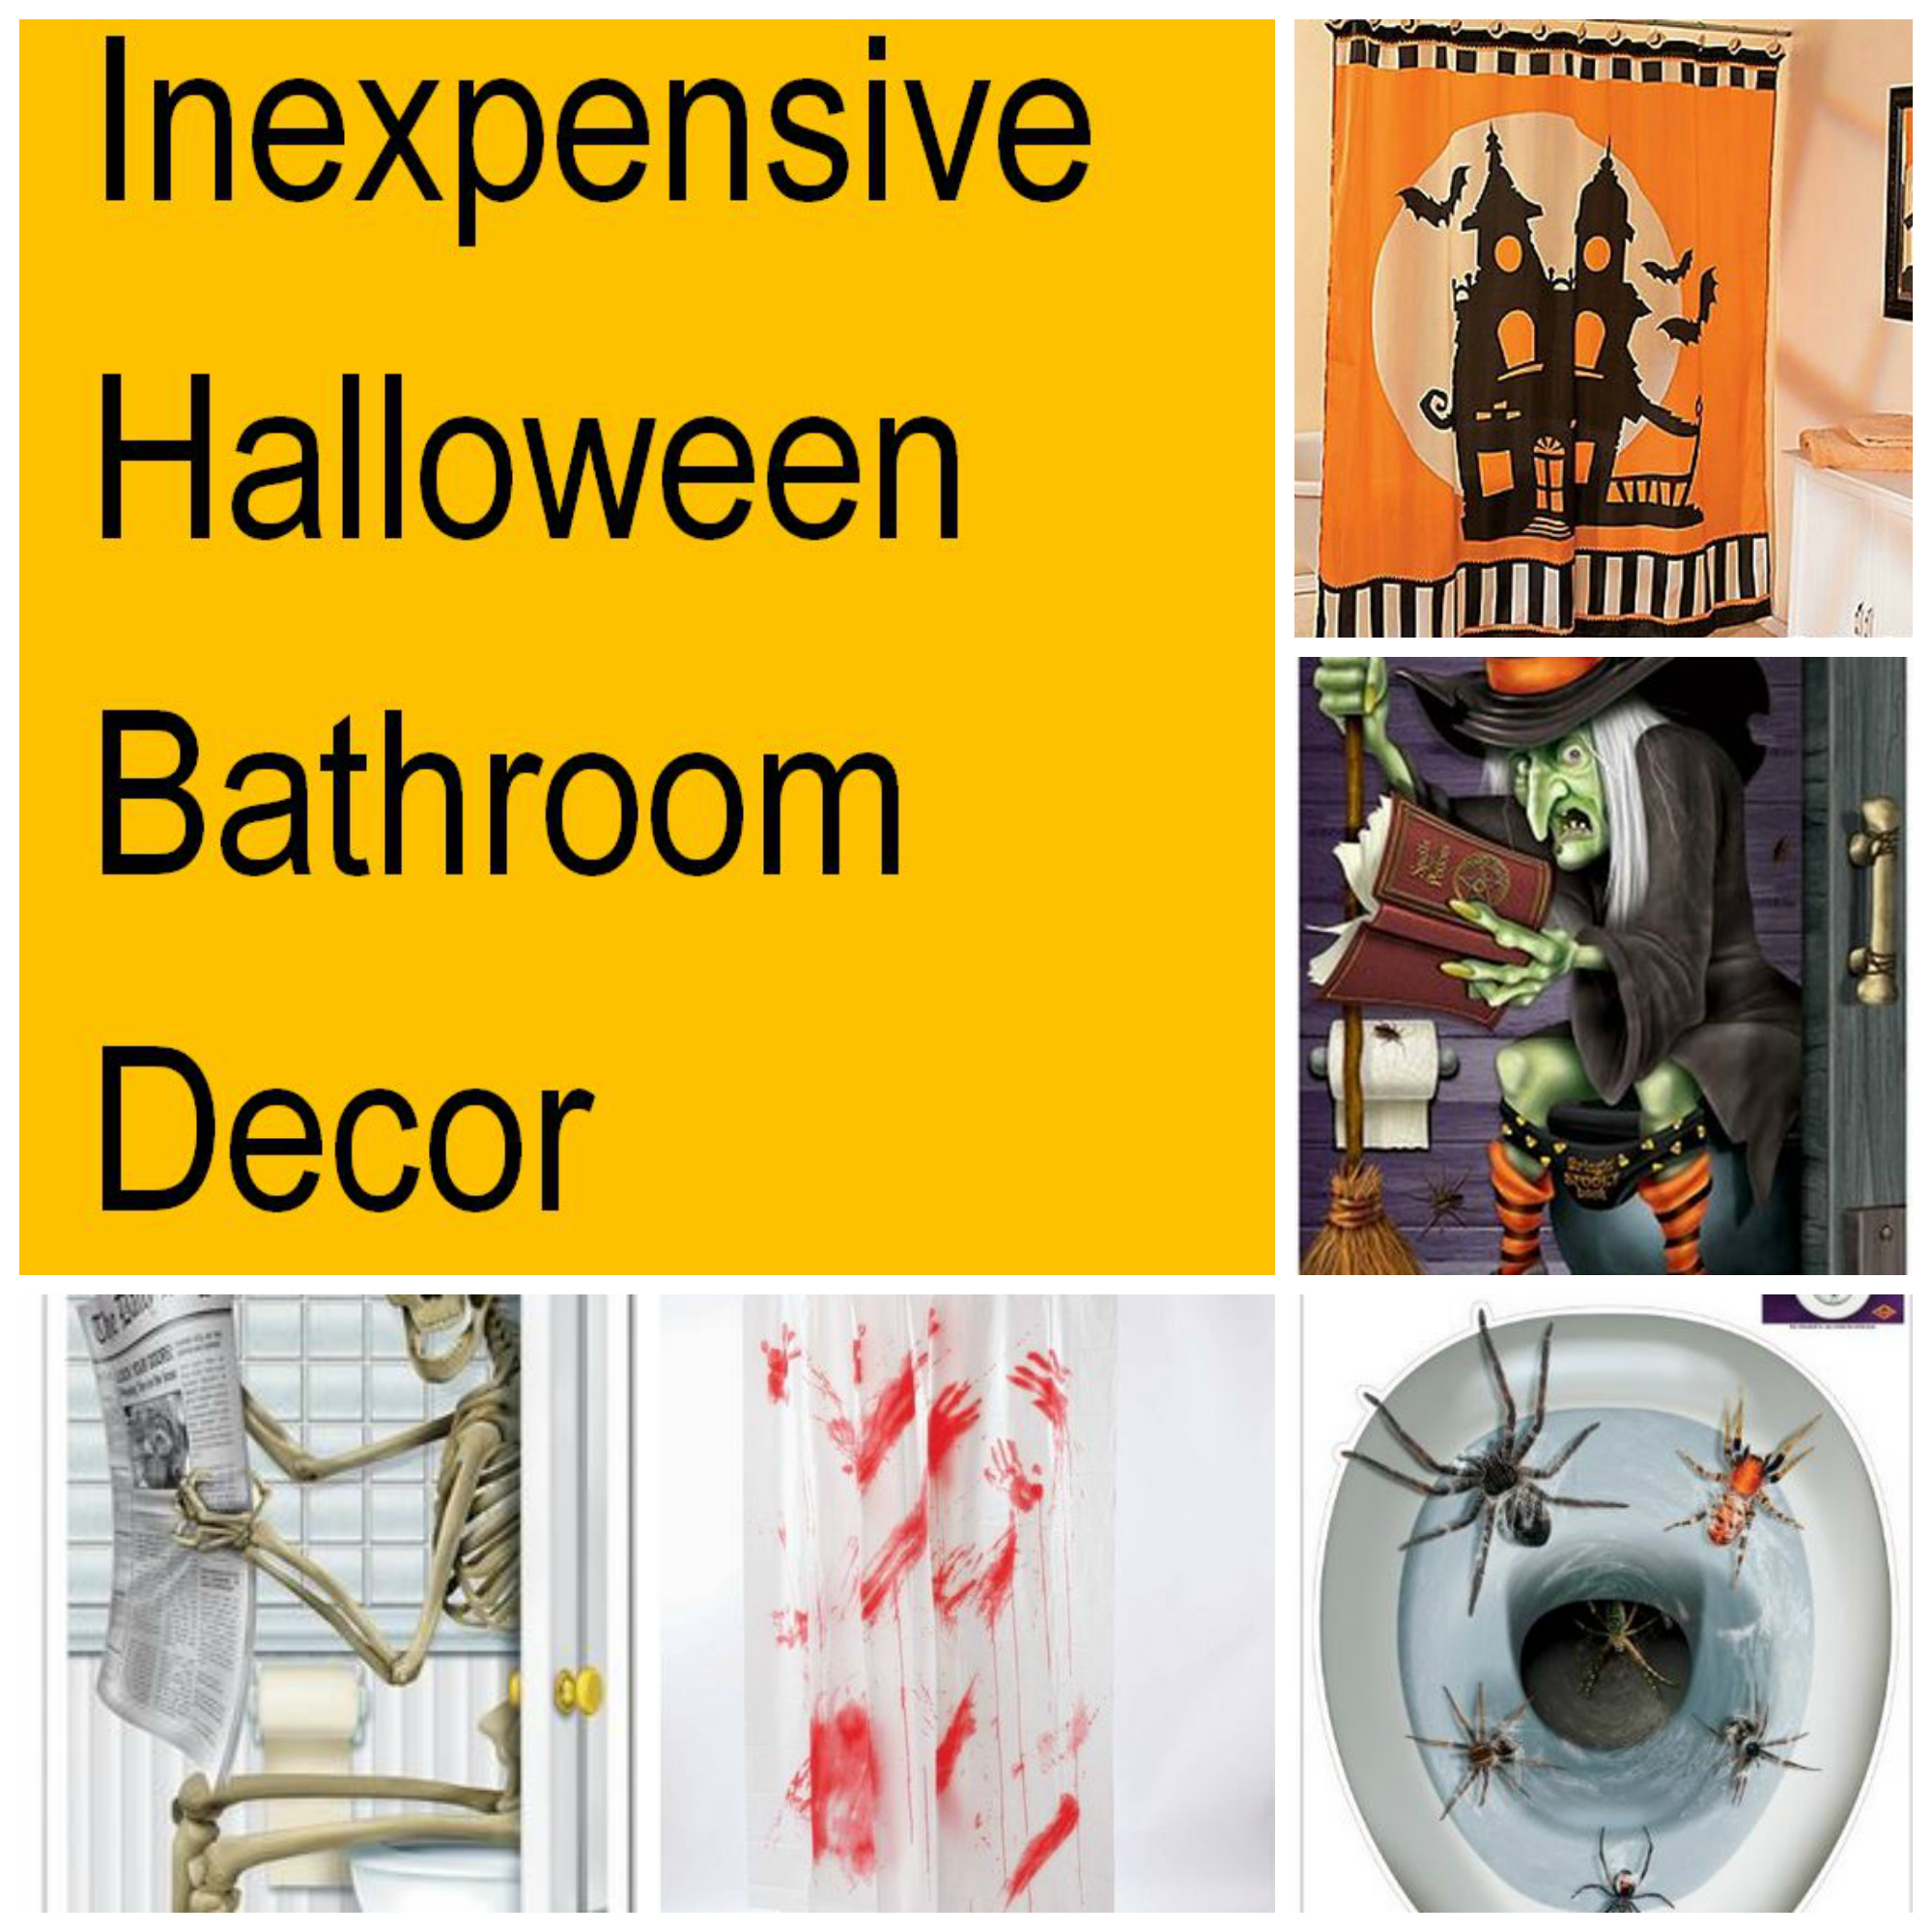 Images of Halloween Bathroom Decorating Ideas | typat.com